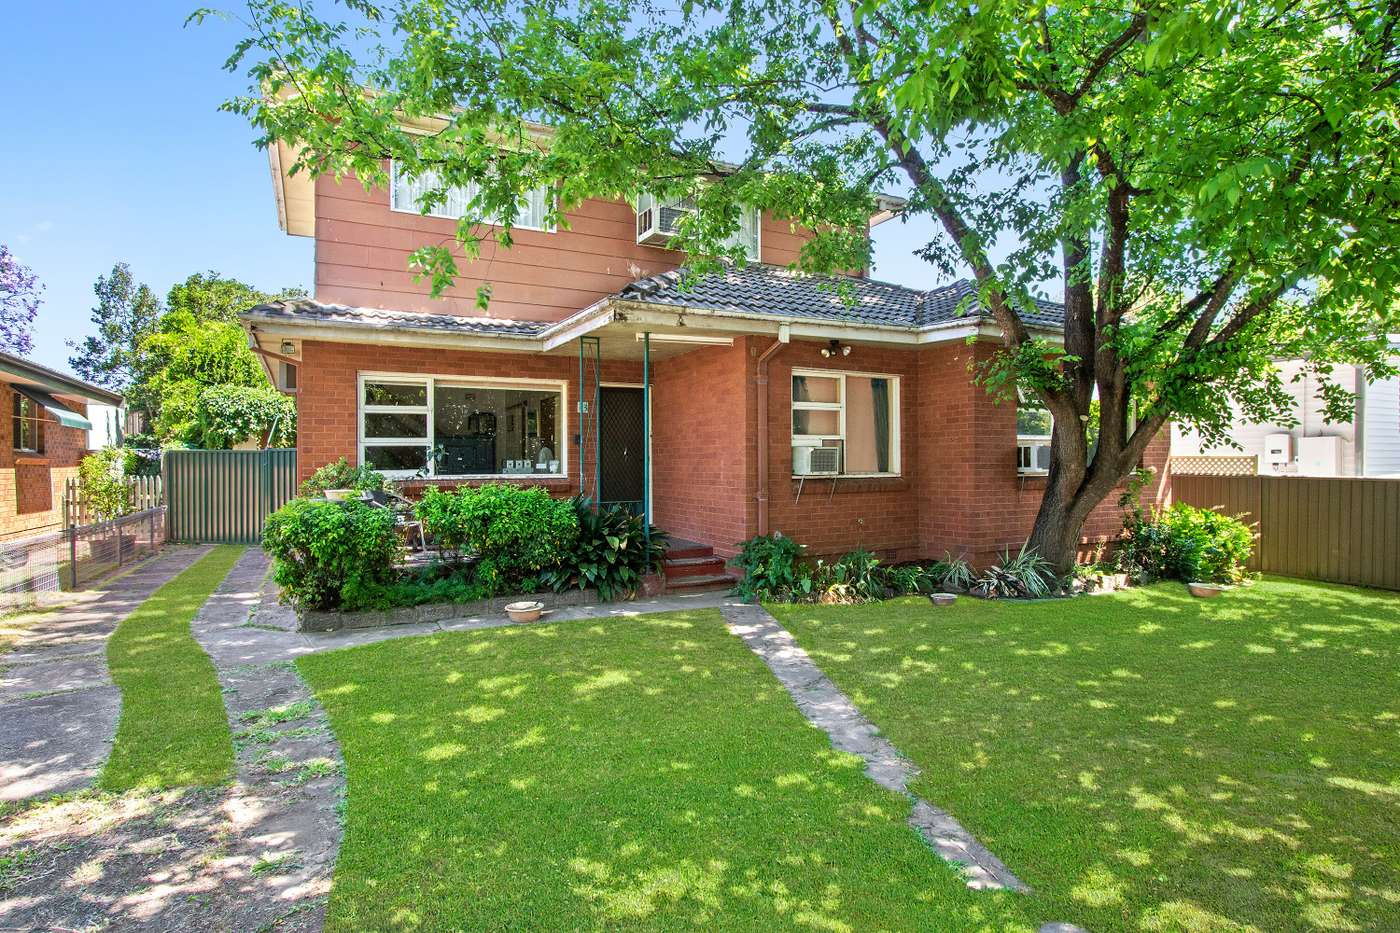 Main view of Homely house listing, 13 Bosworth Street, Richmond, NSW 2753